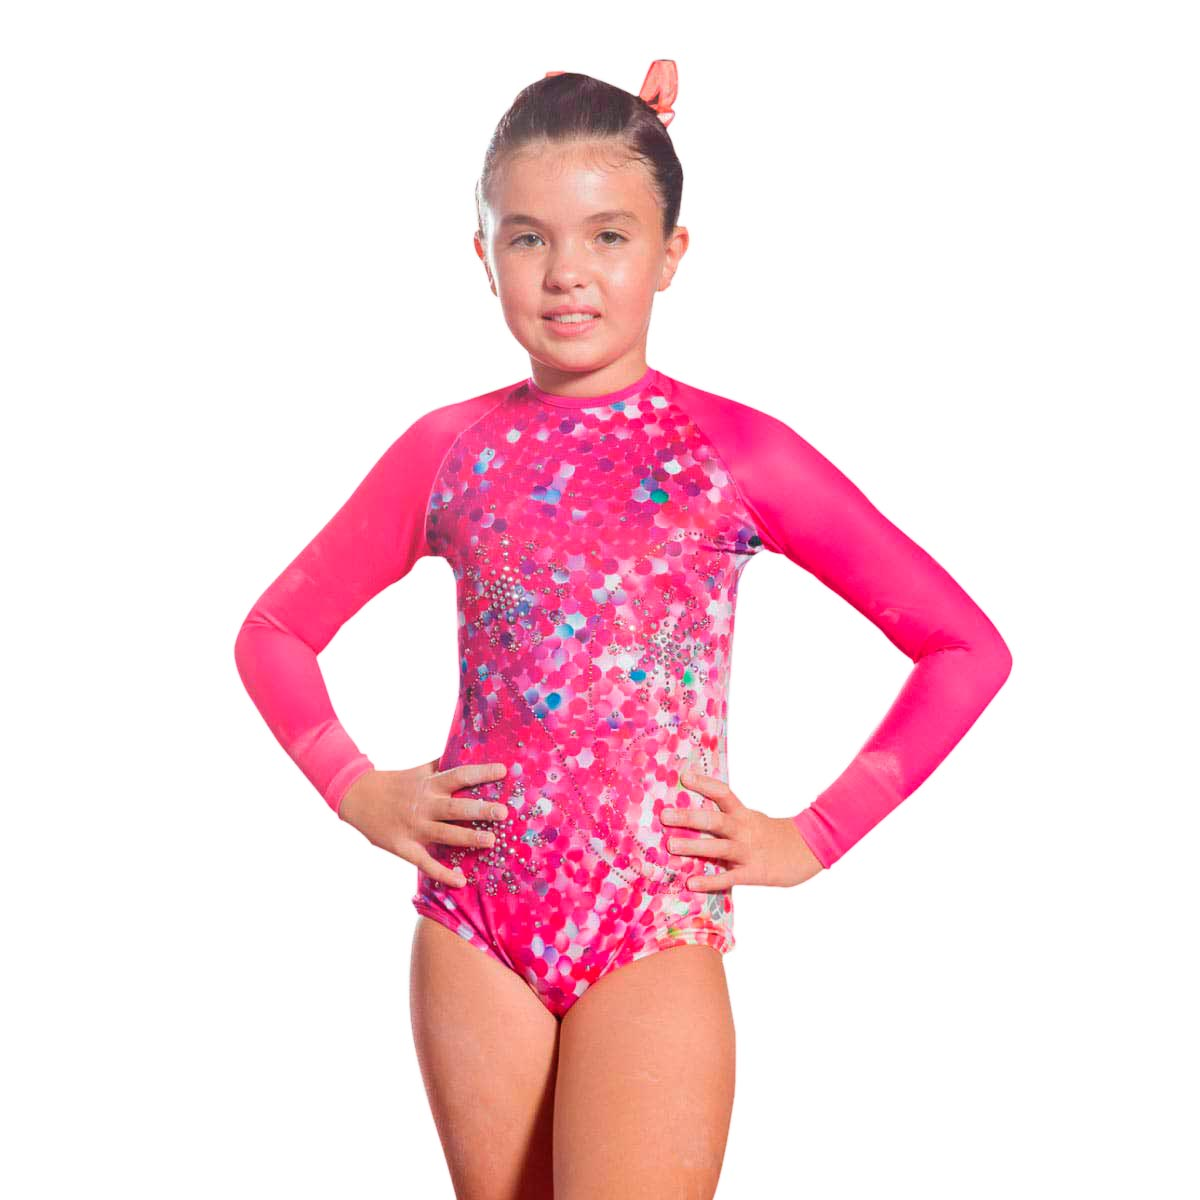 PINK ROCKS - LONG SLEEVE SWIMSUIT